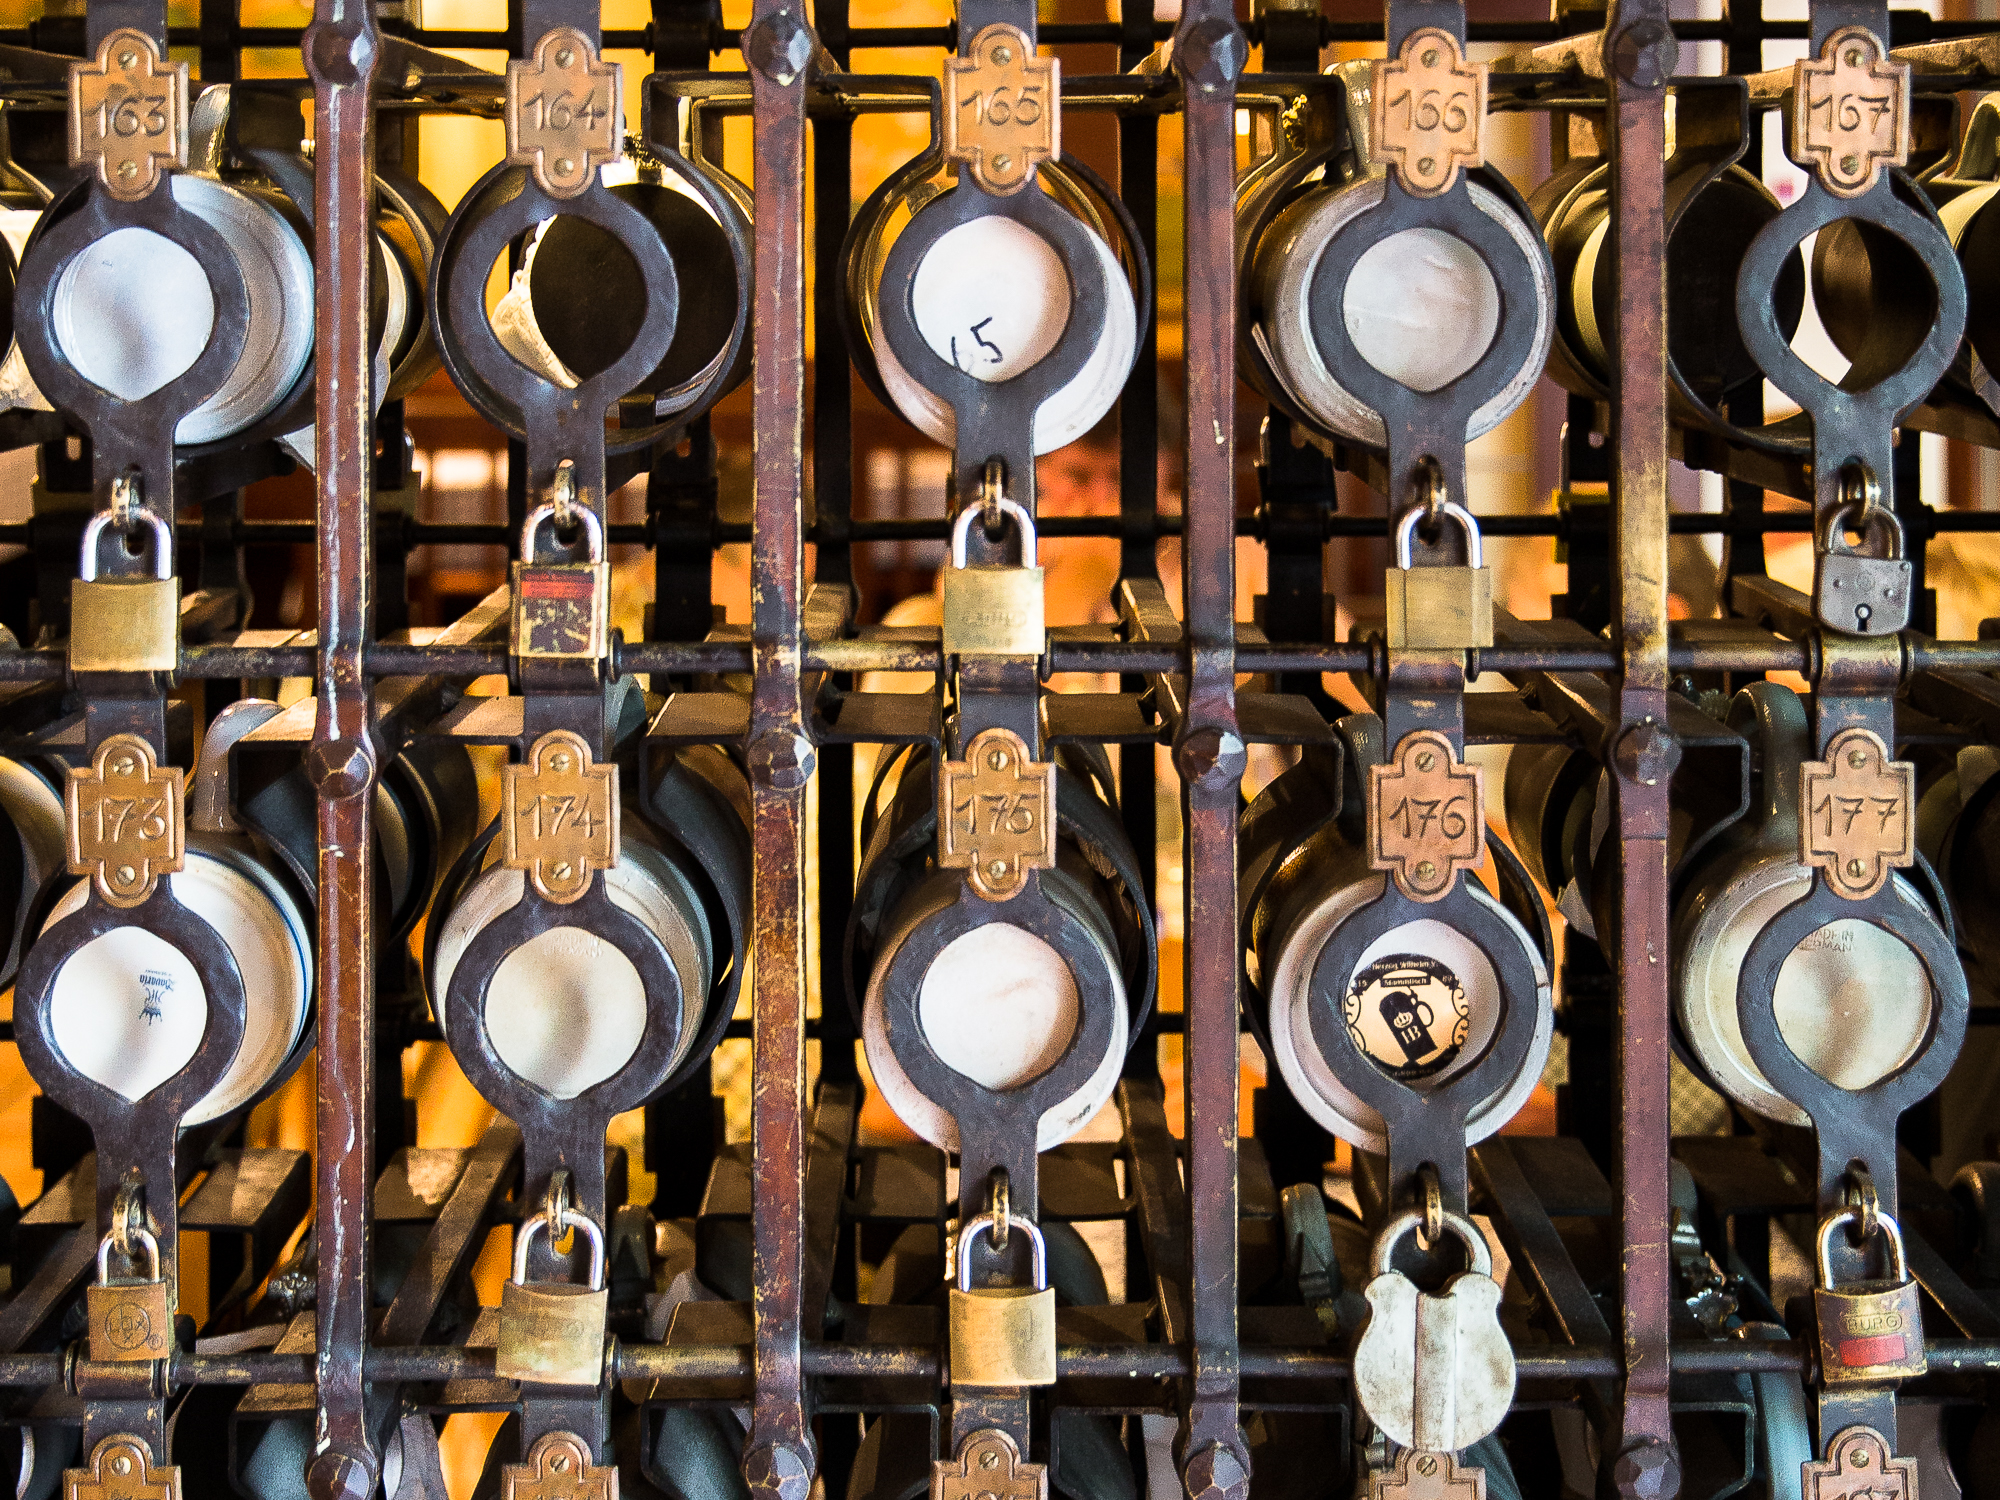 Beer steins under lock and key in a beer hall, munich, bavaria, germany